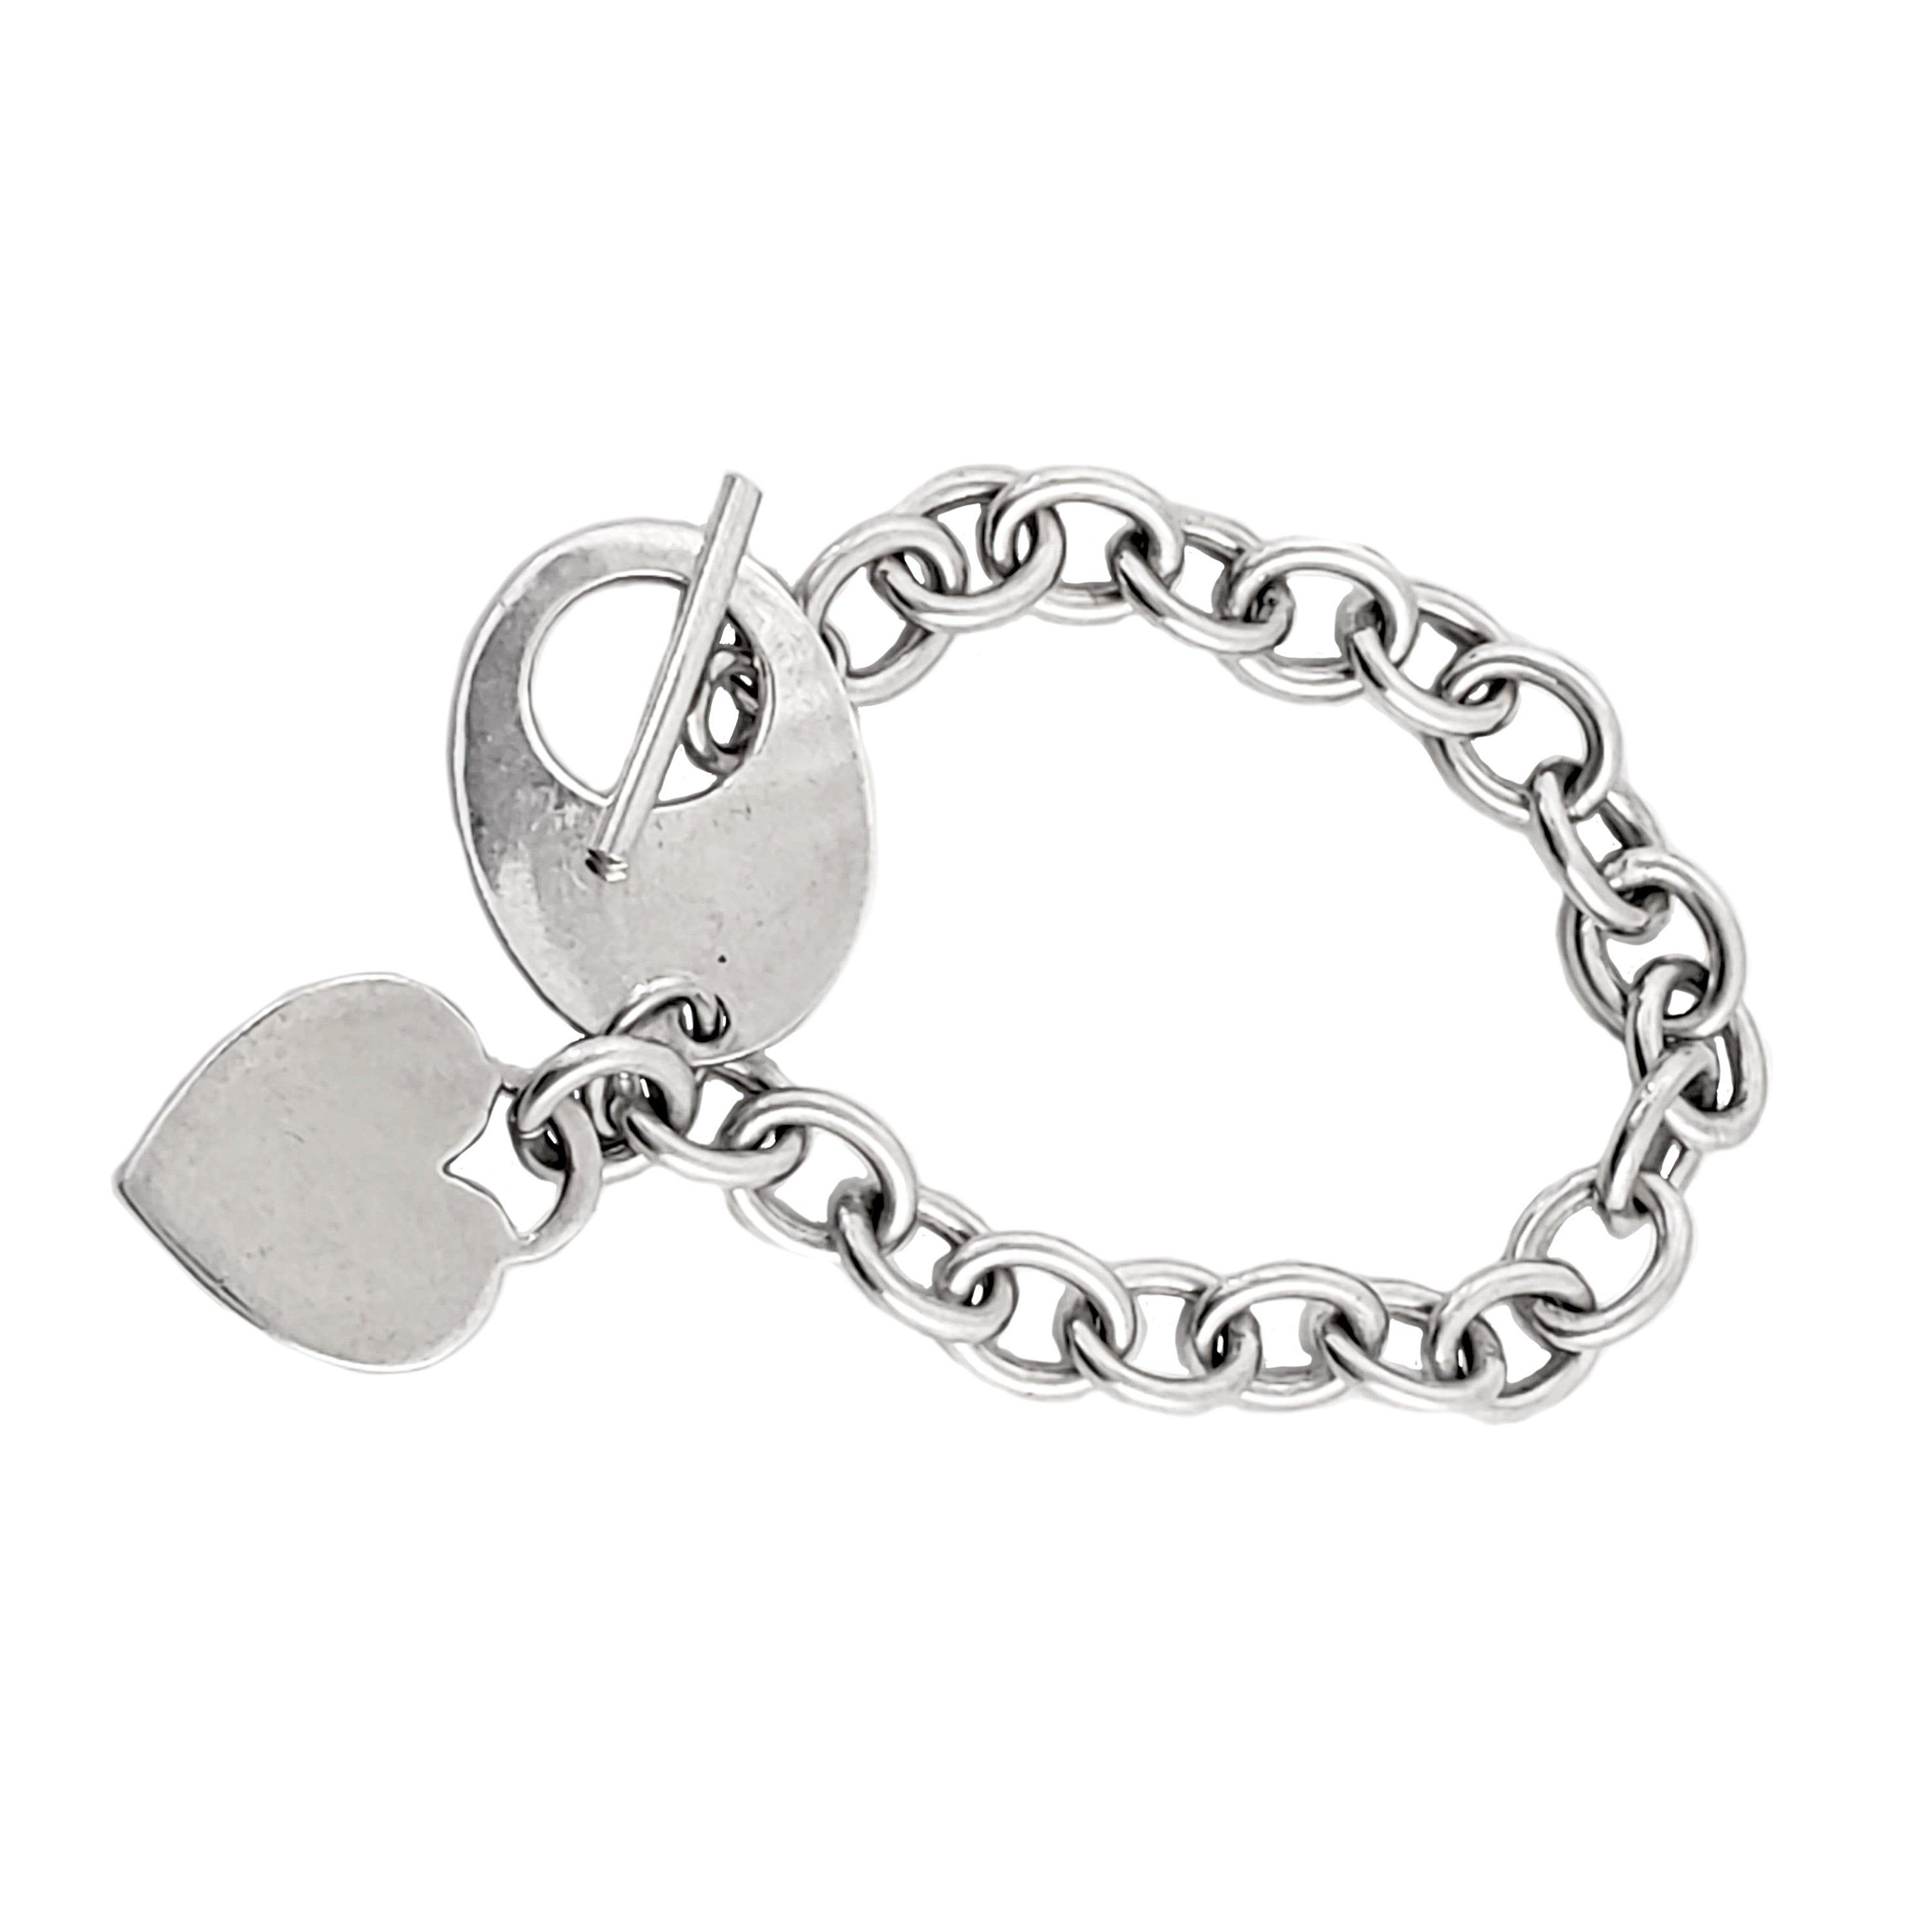 Sterling Silver 7 4.5mm Charm Bracelet With Attached Hand Holding Small Heart Charm